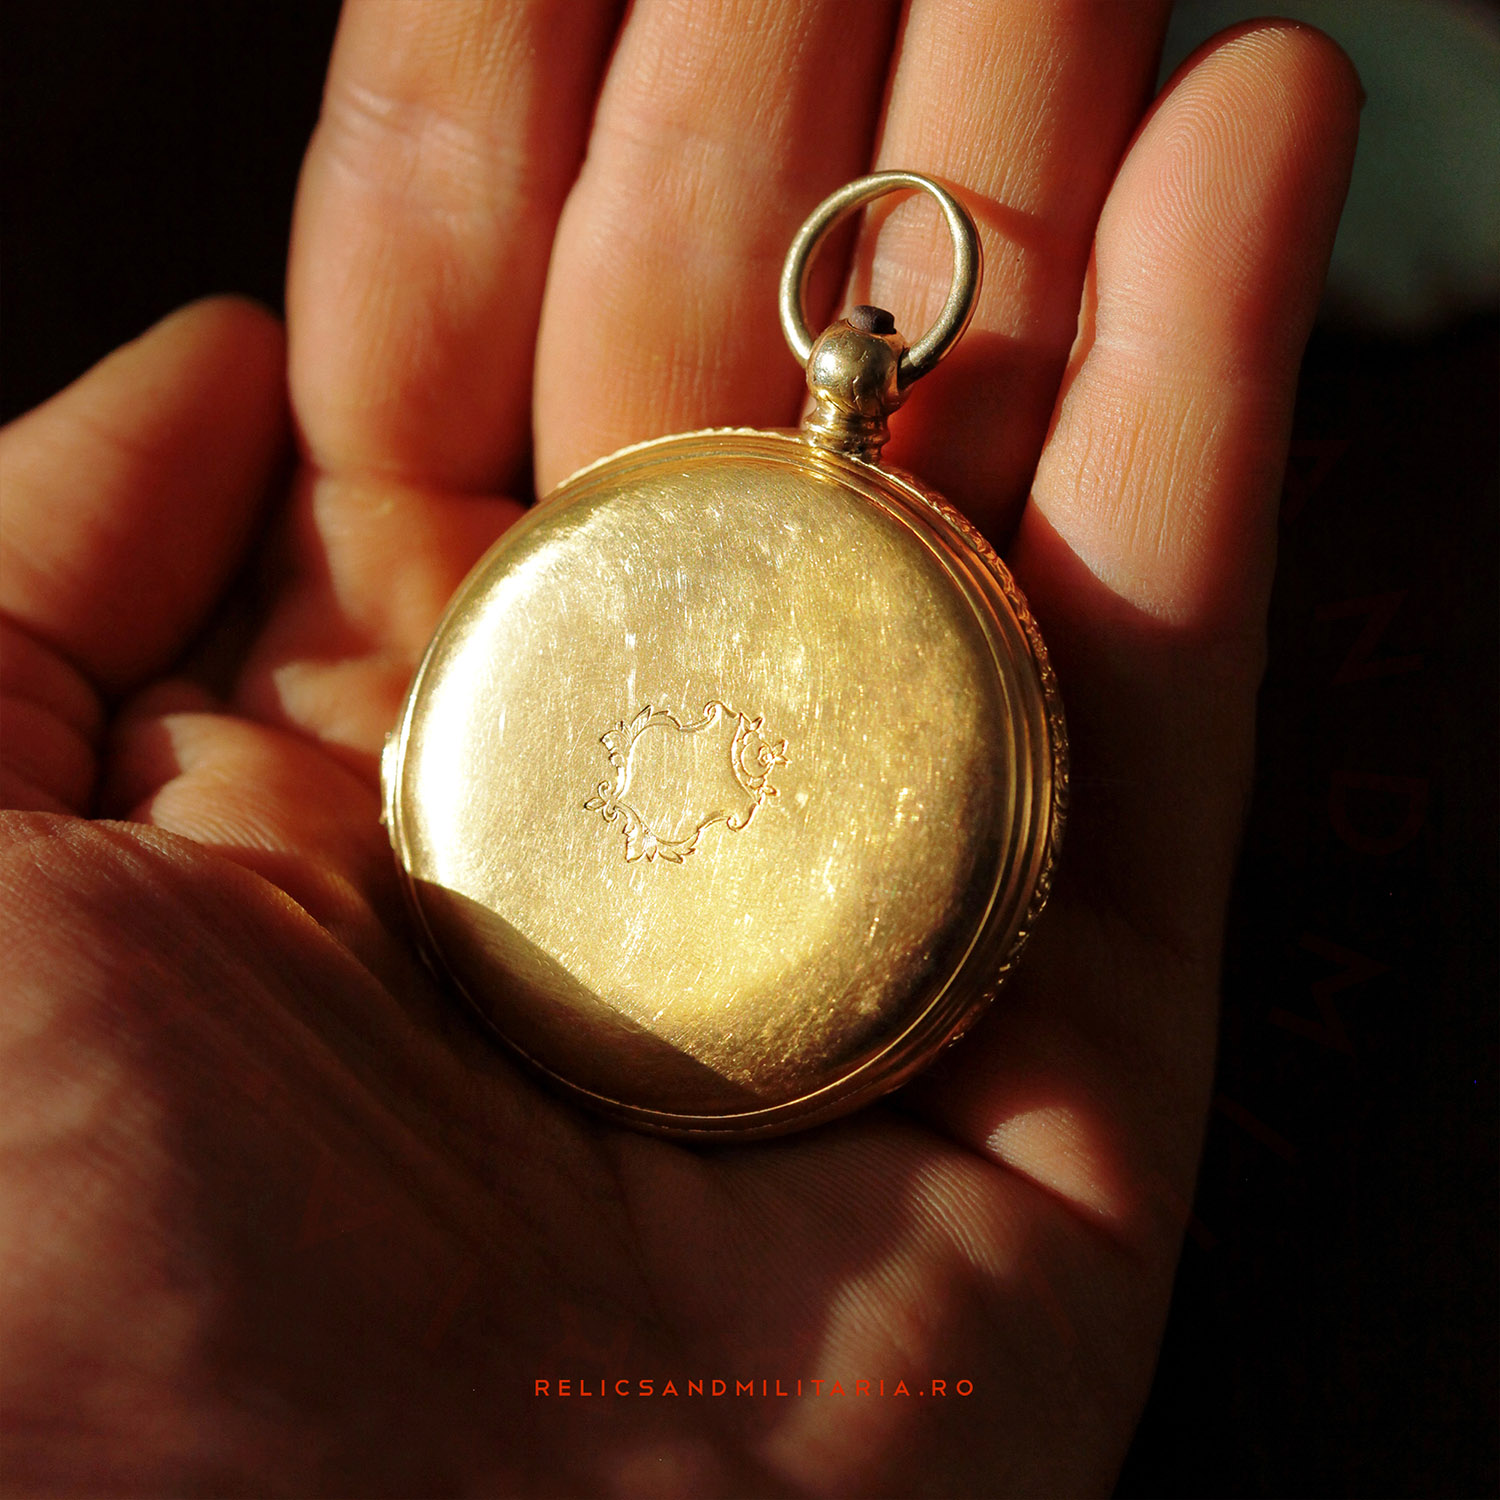 Jules Calame Robert 18k gold pocket watch made in London